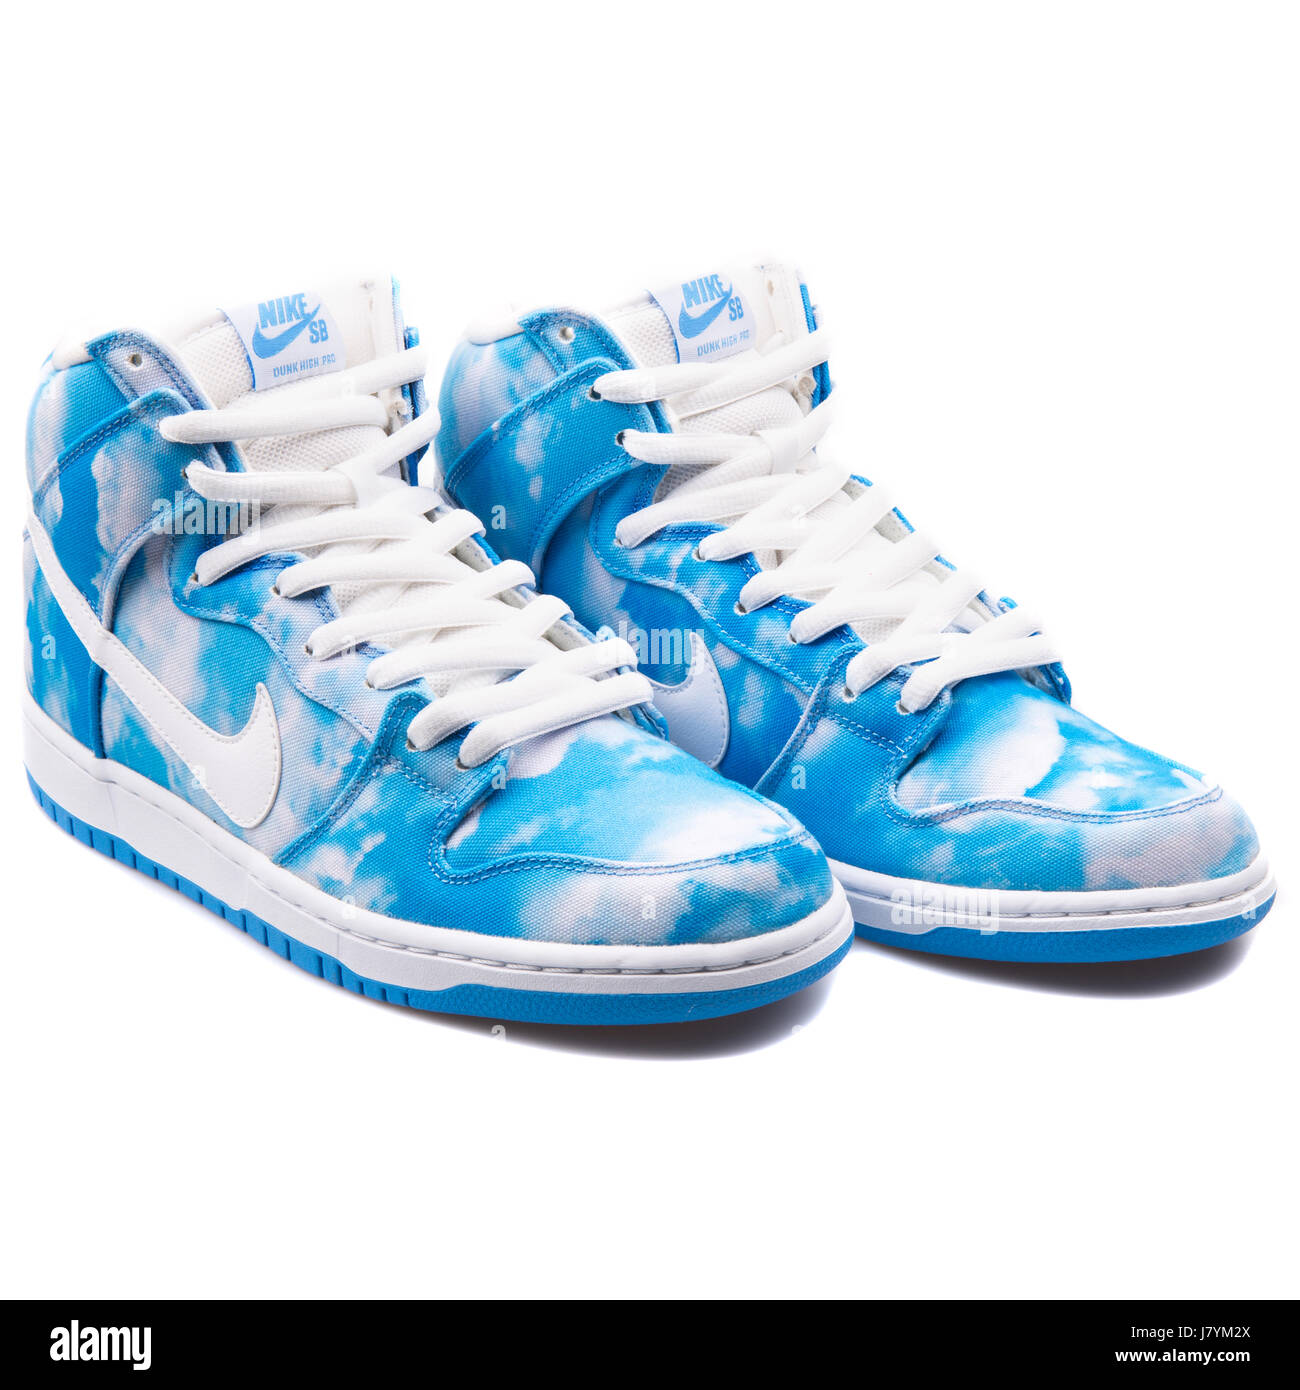 768fe31f Nike Dunk High Pro SB Clouds Blue Pattern - 305050-414 Stock Photo ...